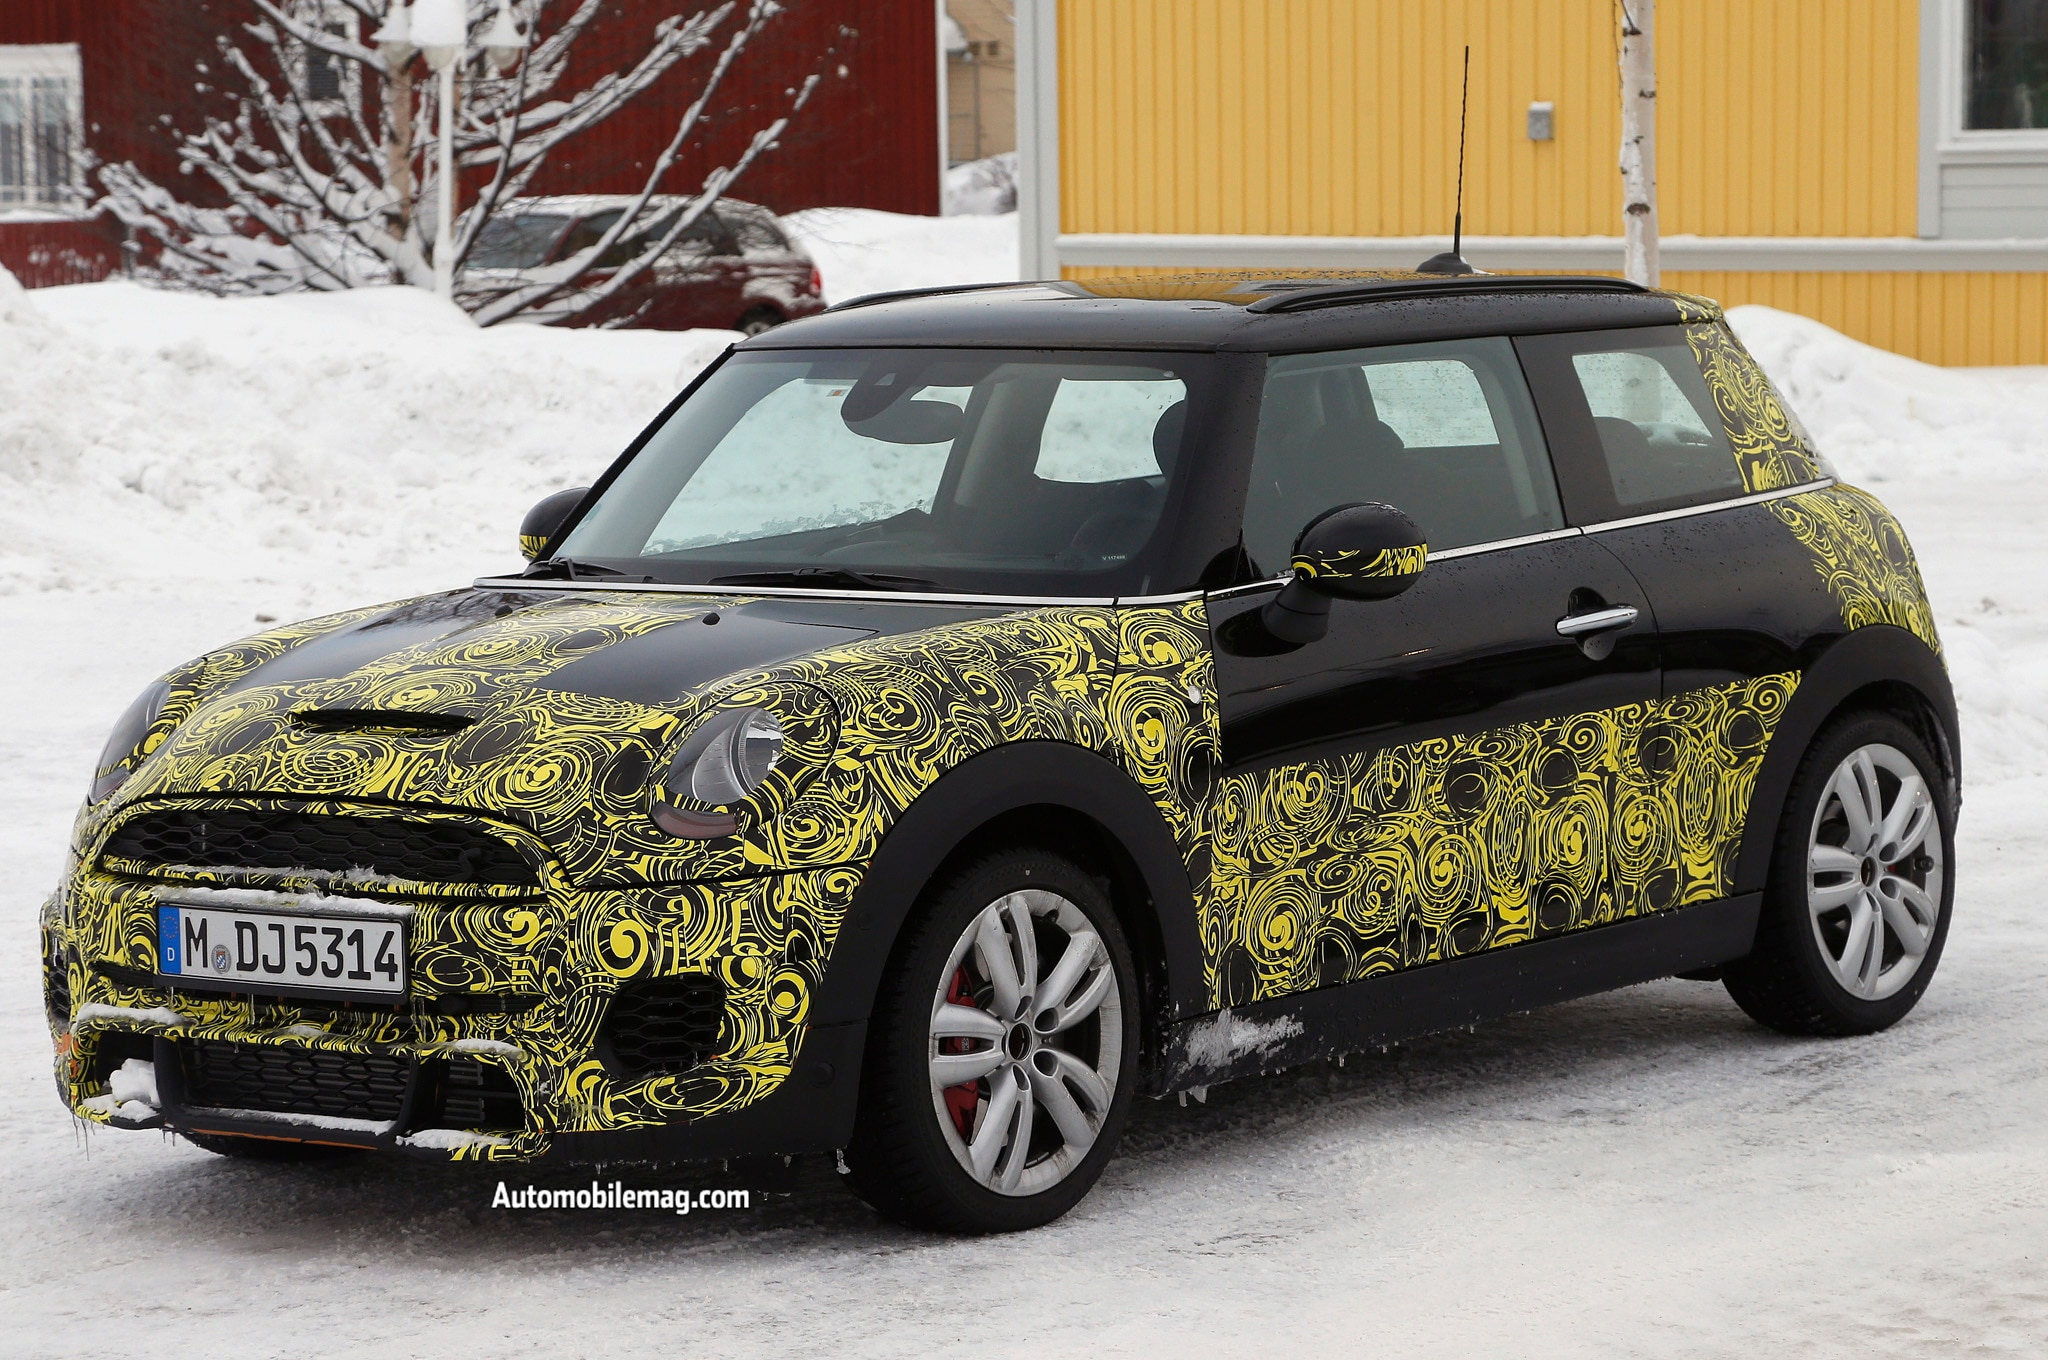 2015 Mini Cooper Jcw Spied Front Three Quarter1